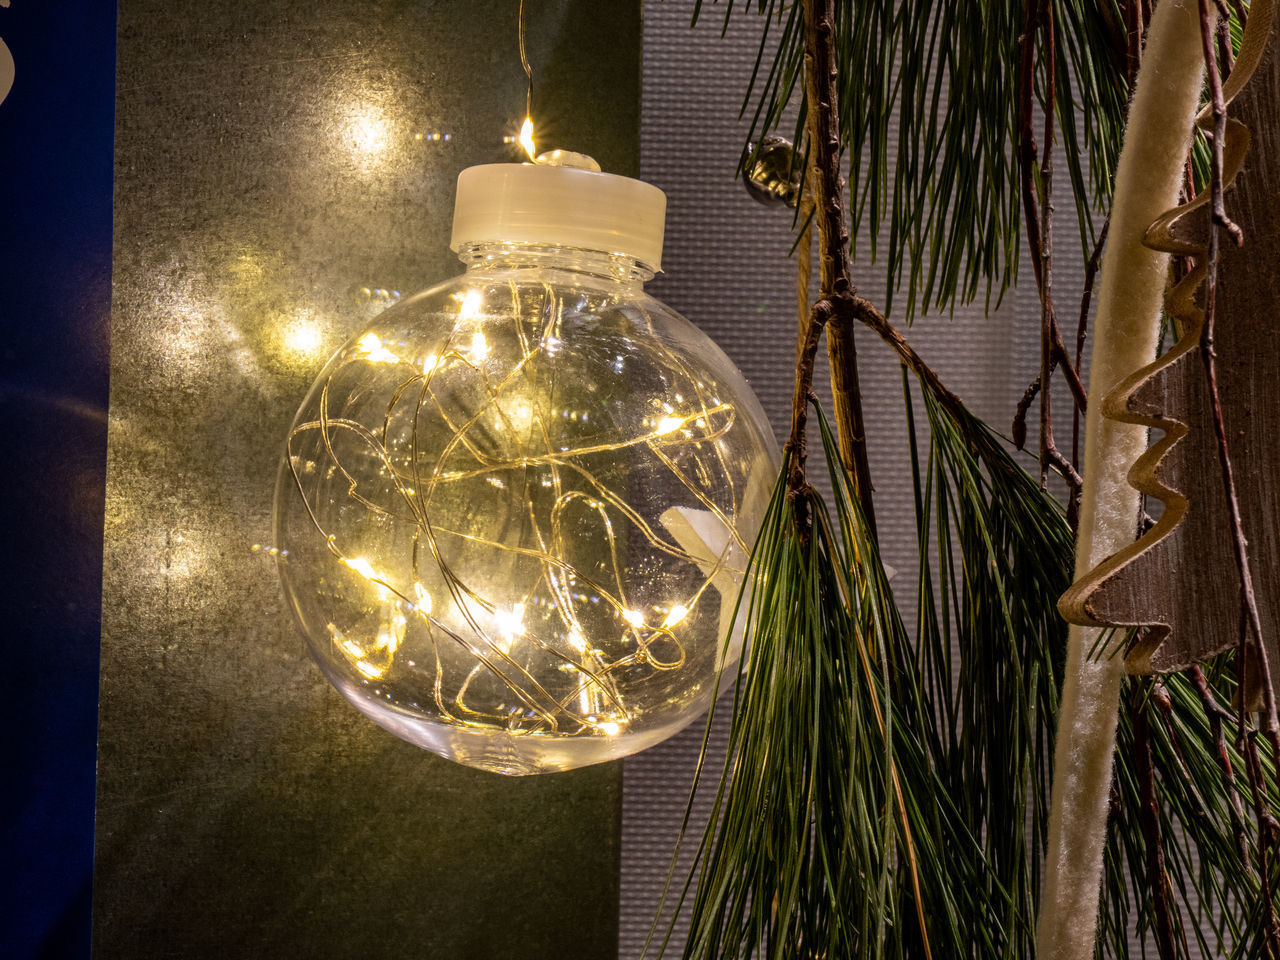 illuminated, electricity, lighting equipment, hanging, electric light, indoors, no people, light, tree, light bulb, close-up, night, glowing, decoration, plant, light - natural phenomenon, focus on foreground, christmas, celebration, christmas lights, electric lamp